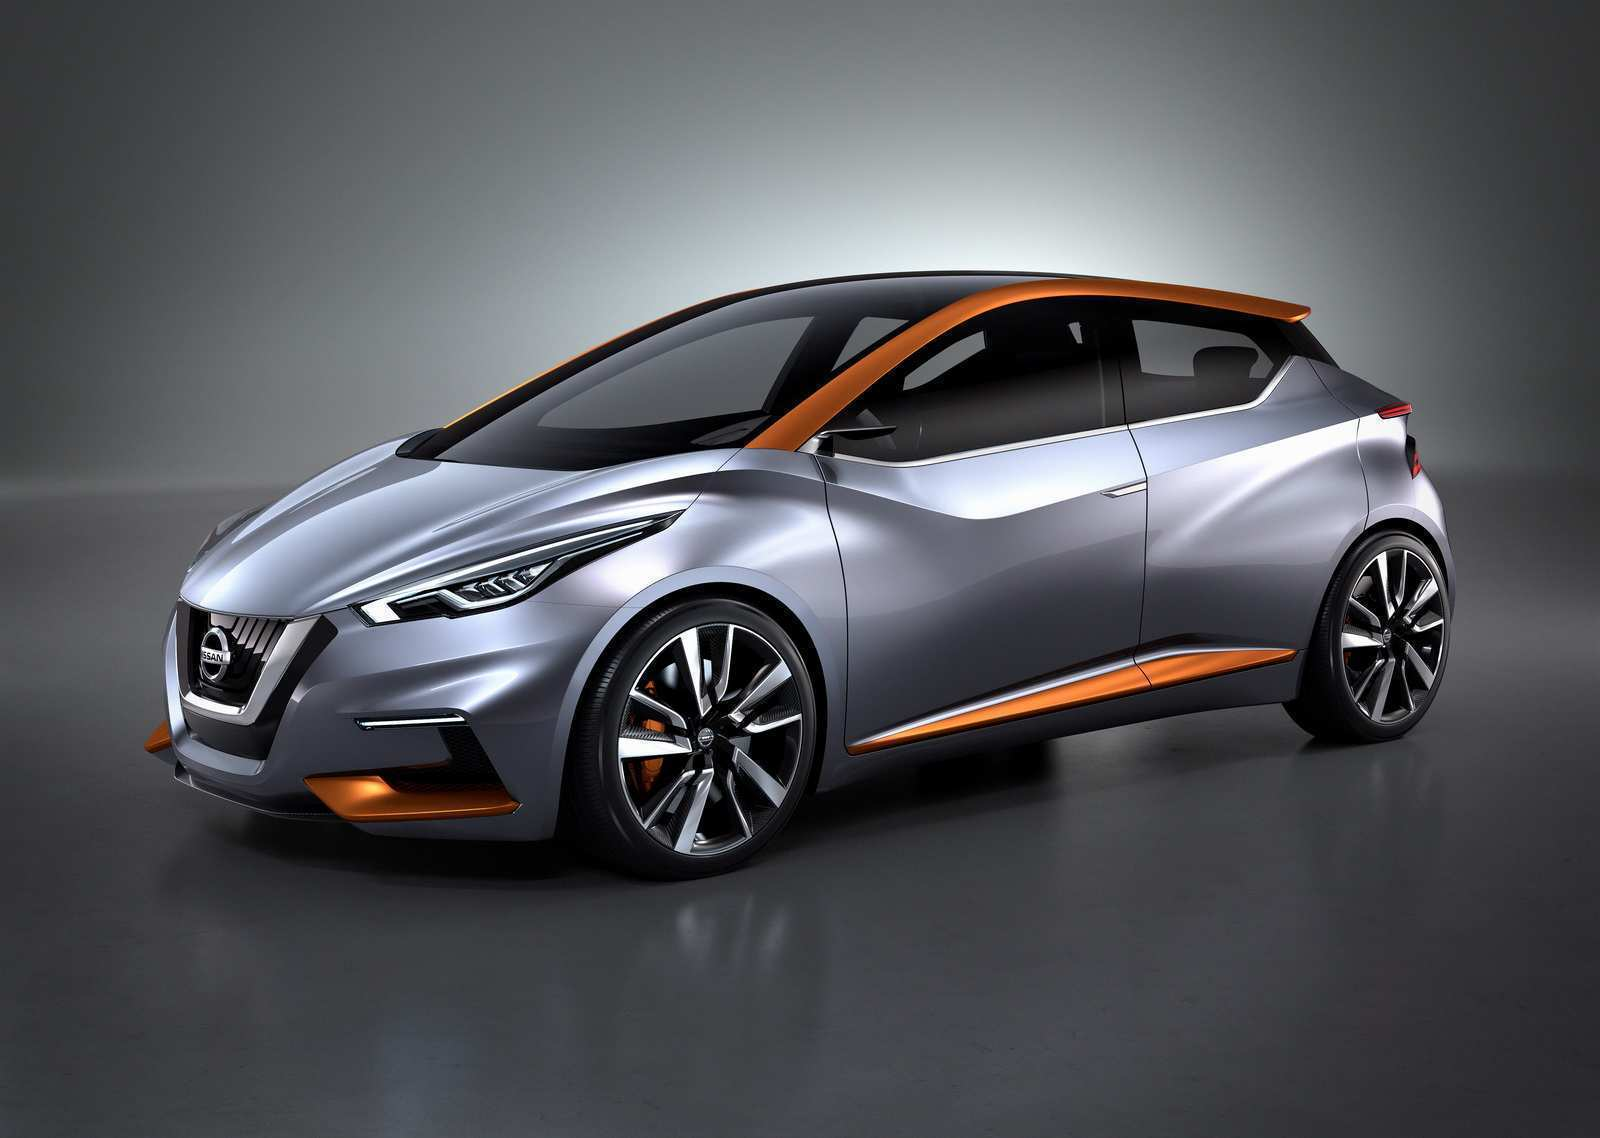 48 Concept of 2020 Nissan Micra 2018 First Drive with 2020 Nissan Micra 2018